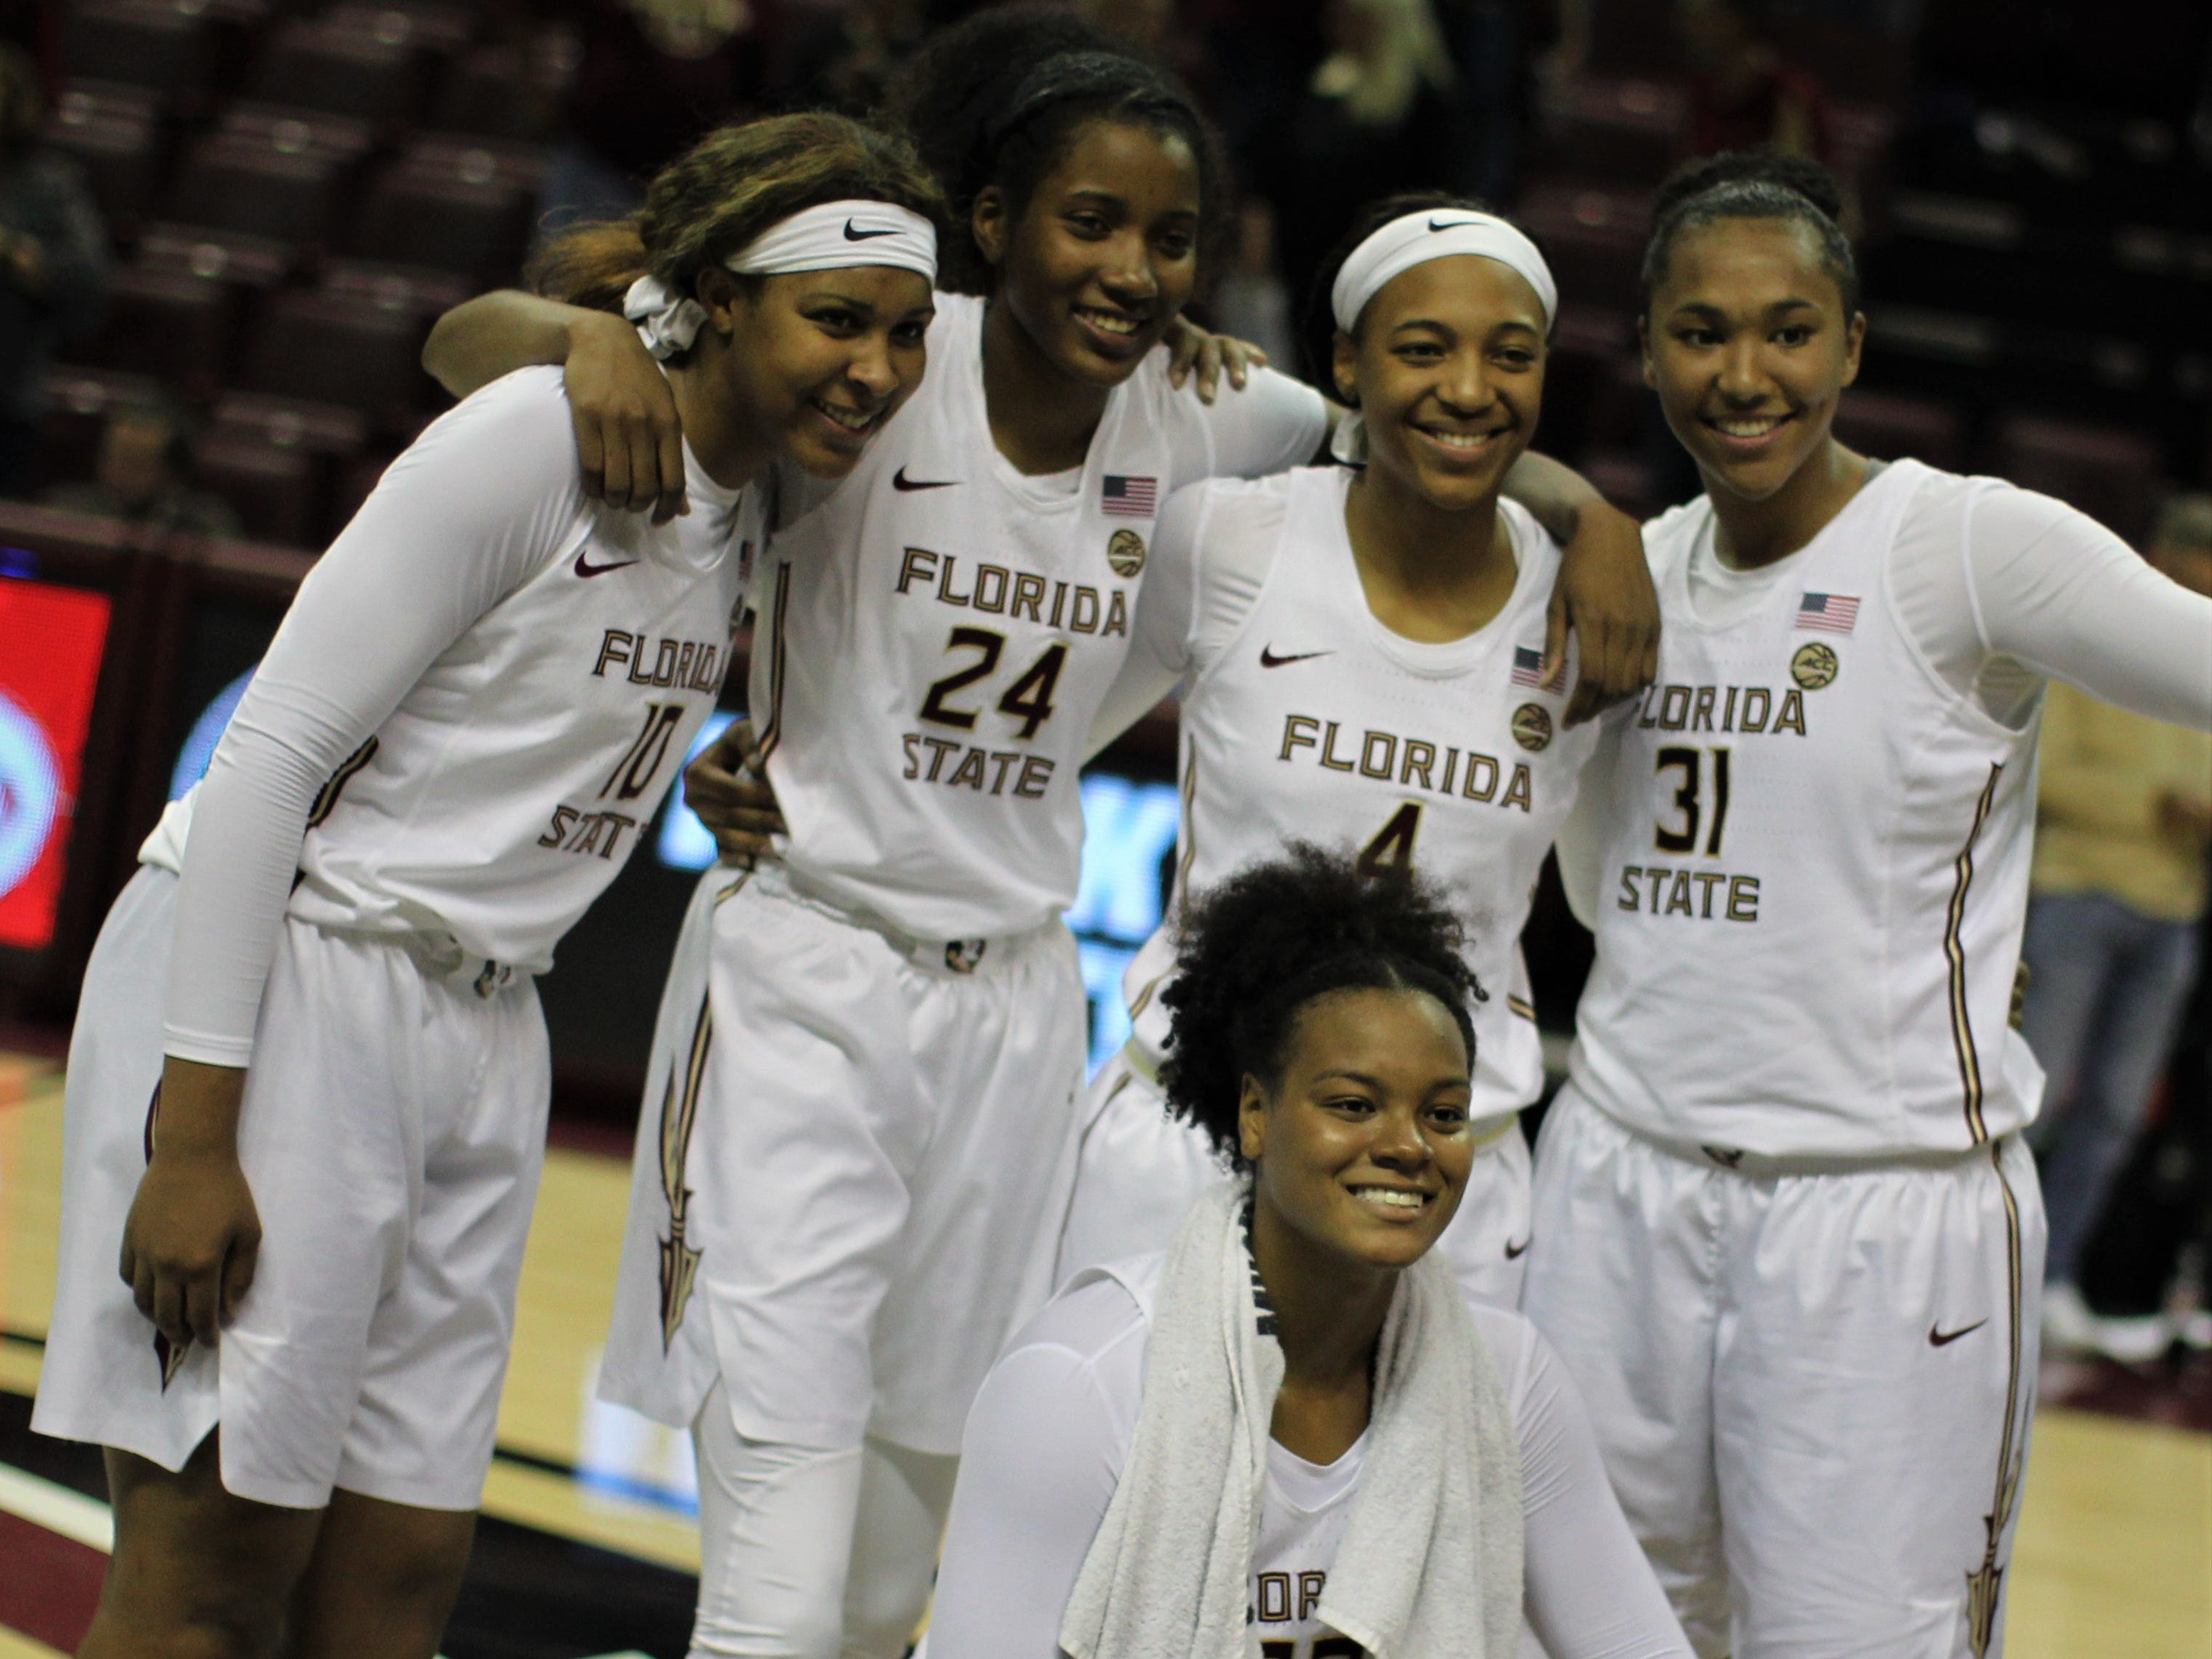 Florida State's Kourney Weber (10), Morgan Jones (24), Amaya Brown (4), Savannah Wilkinson (31) and Valencia Myers (32) celebrate a win over Florida at the Tucker Civic Center on Nov. 11, 2018.